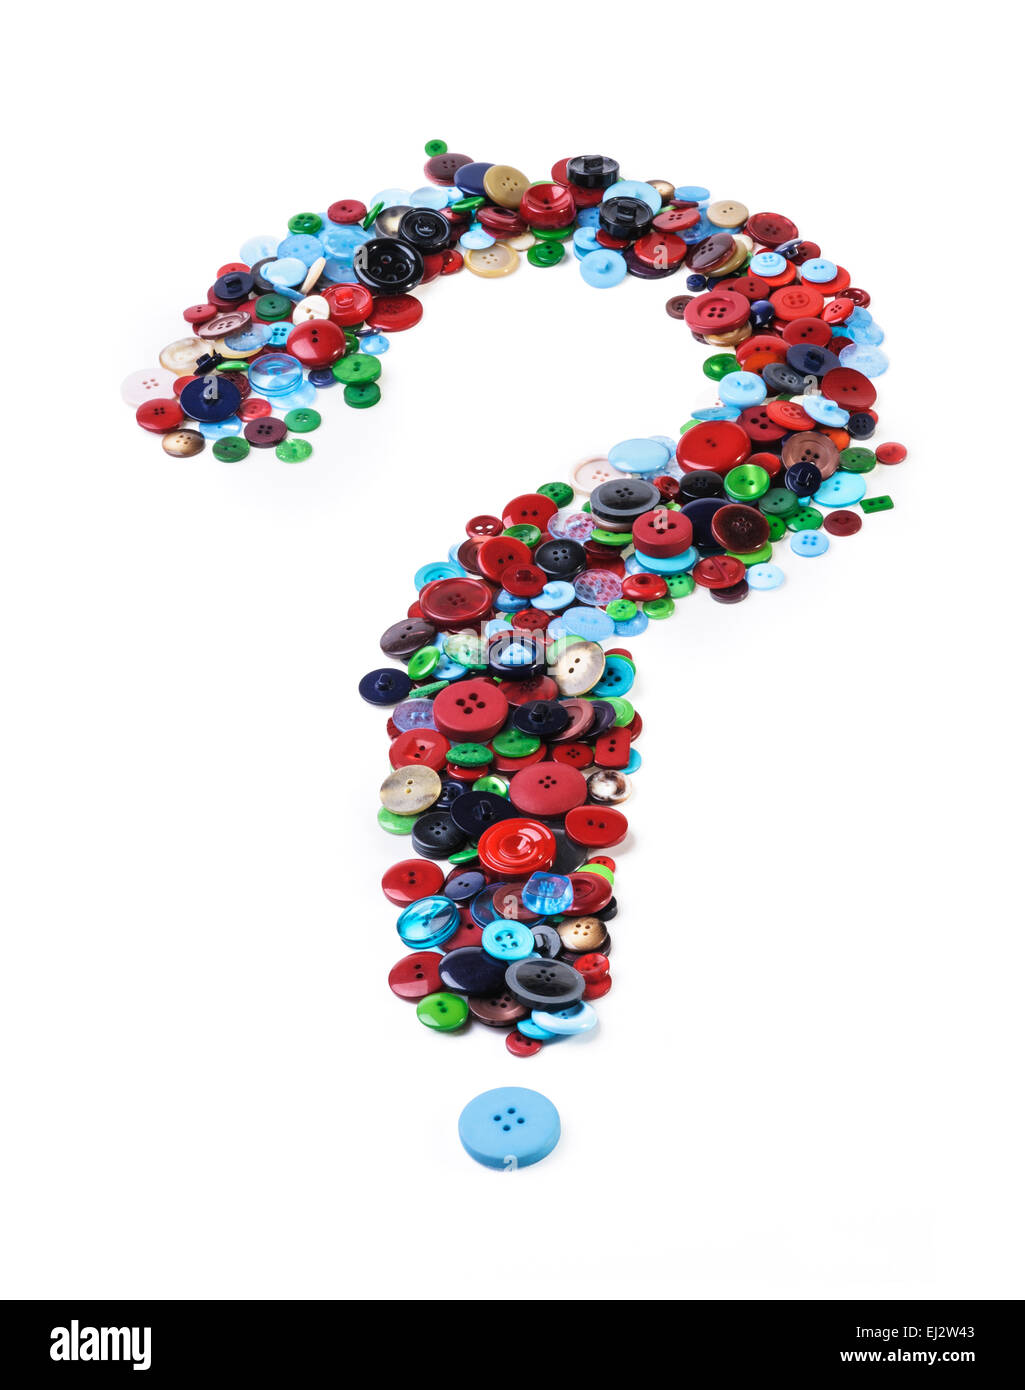 Many buttons formed in the shape of a question mark. - Stock Image